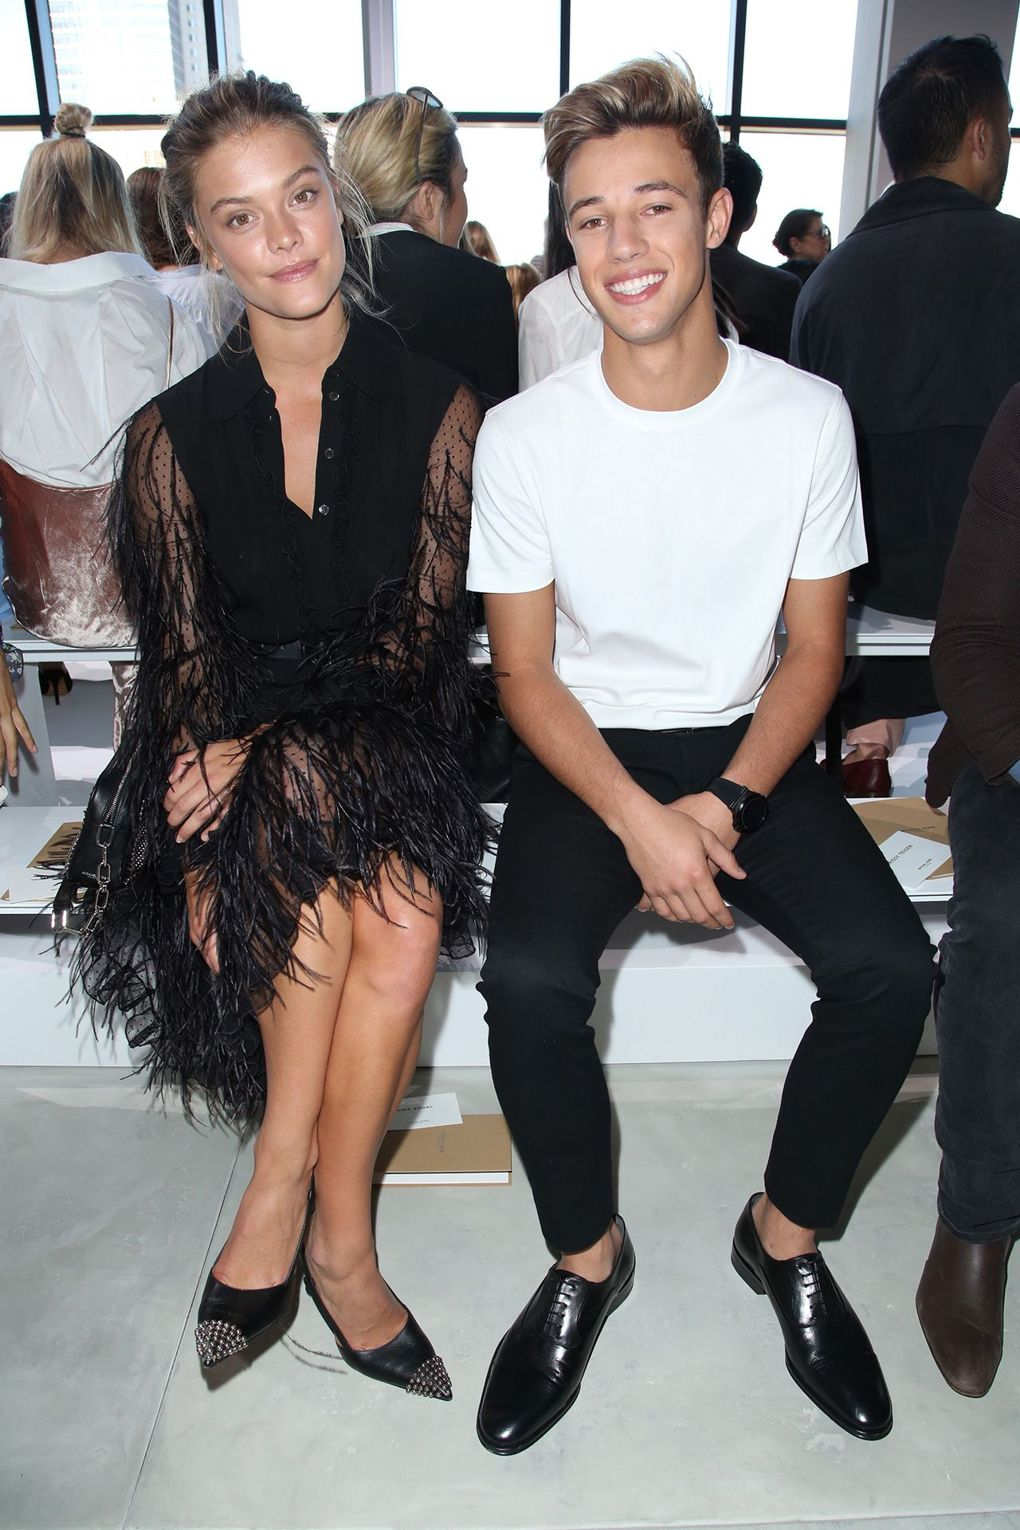 Nina Agdal and Cameron Dallas sitting front and centre at the Michael Kors show this week at NYFW.